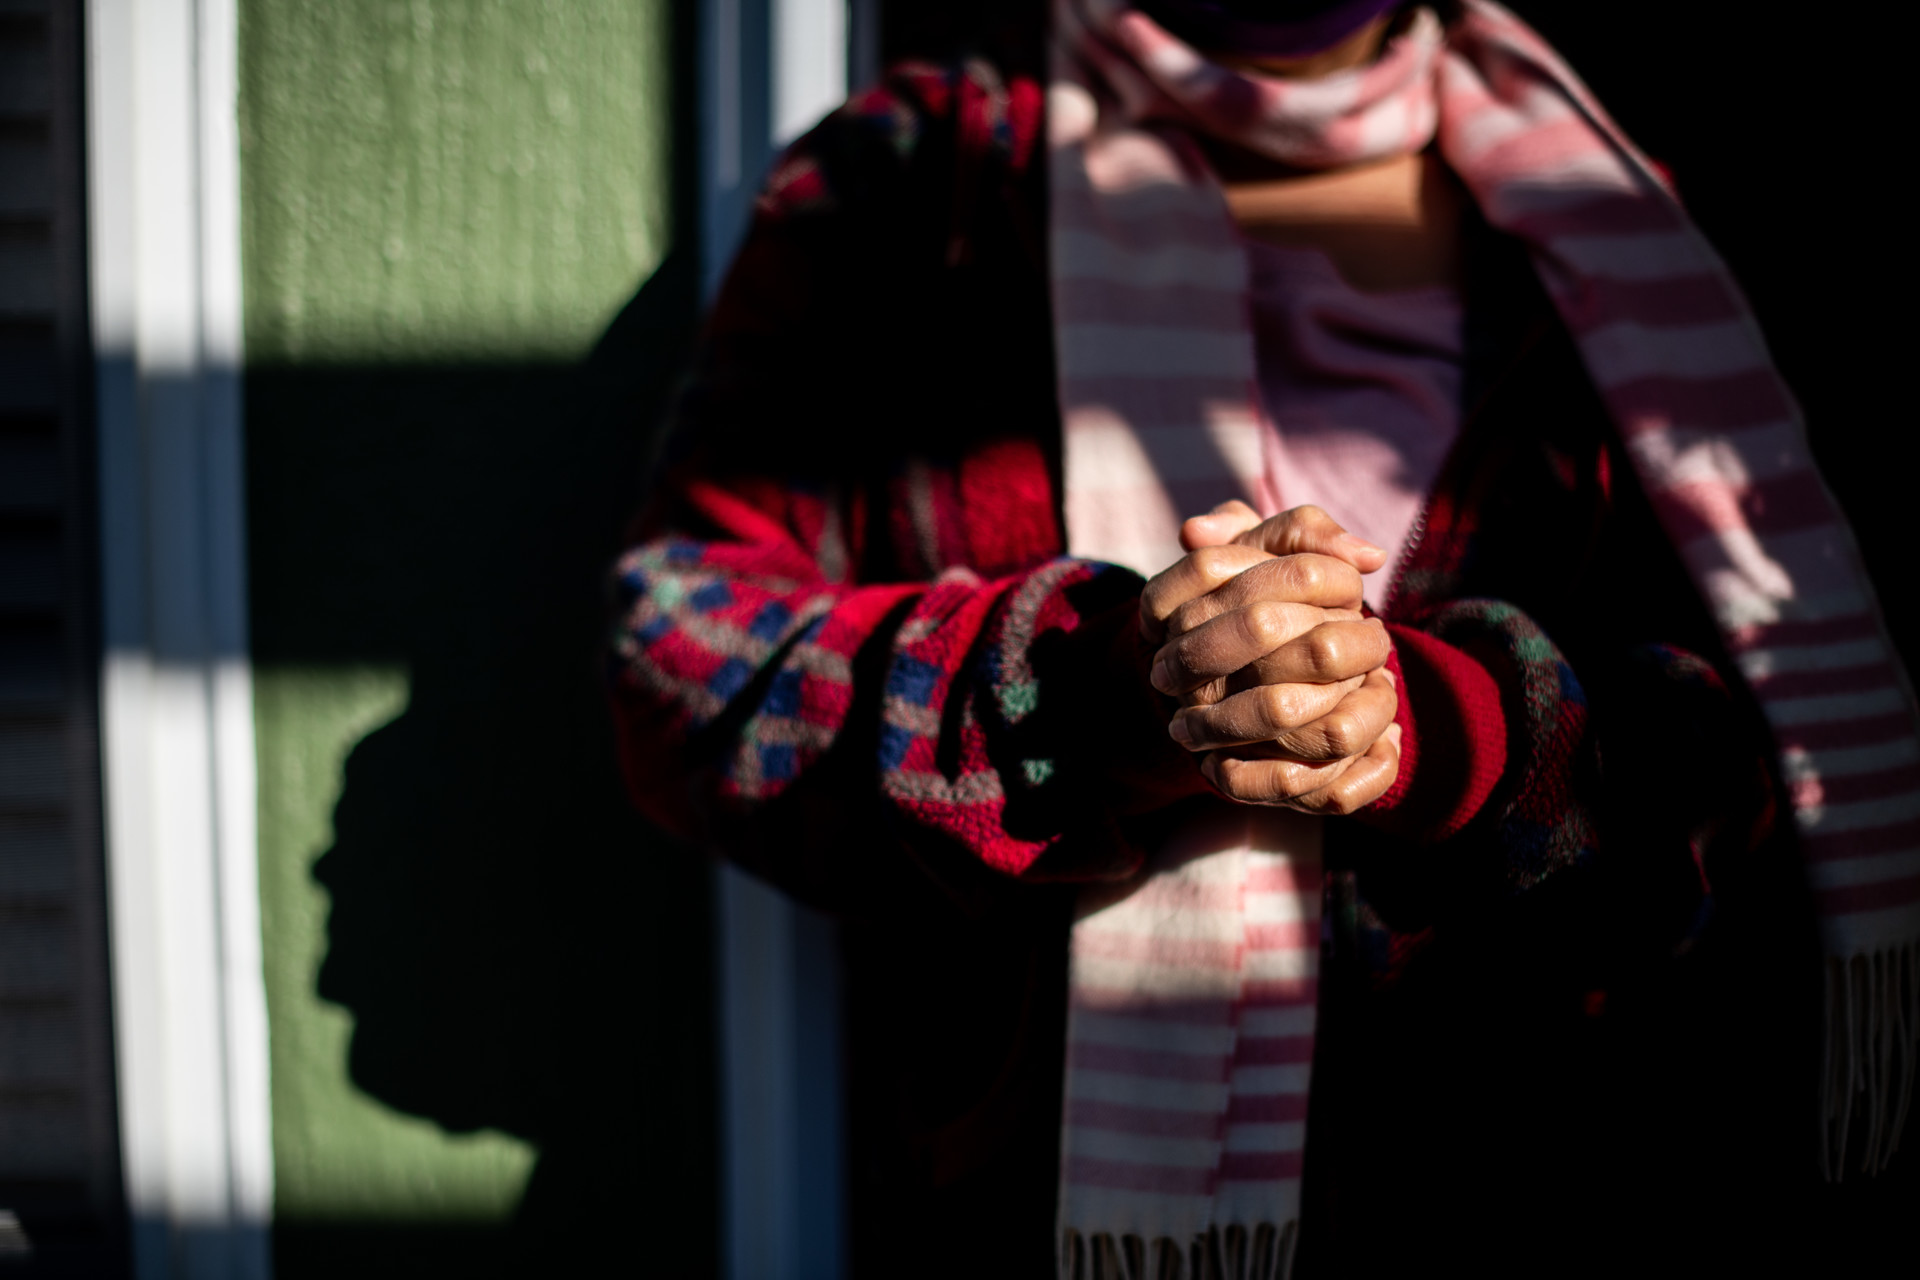 A person standing outside of an apartment building, clasping their hands together